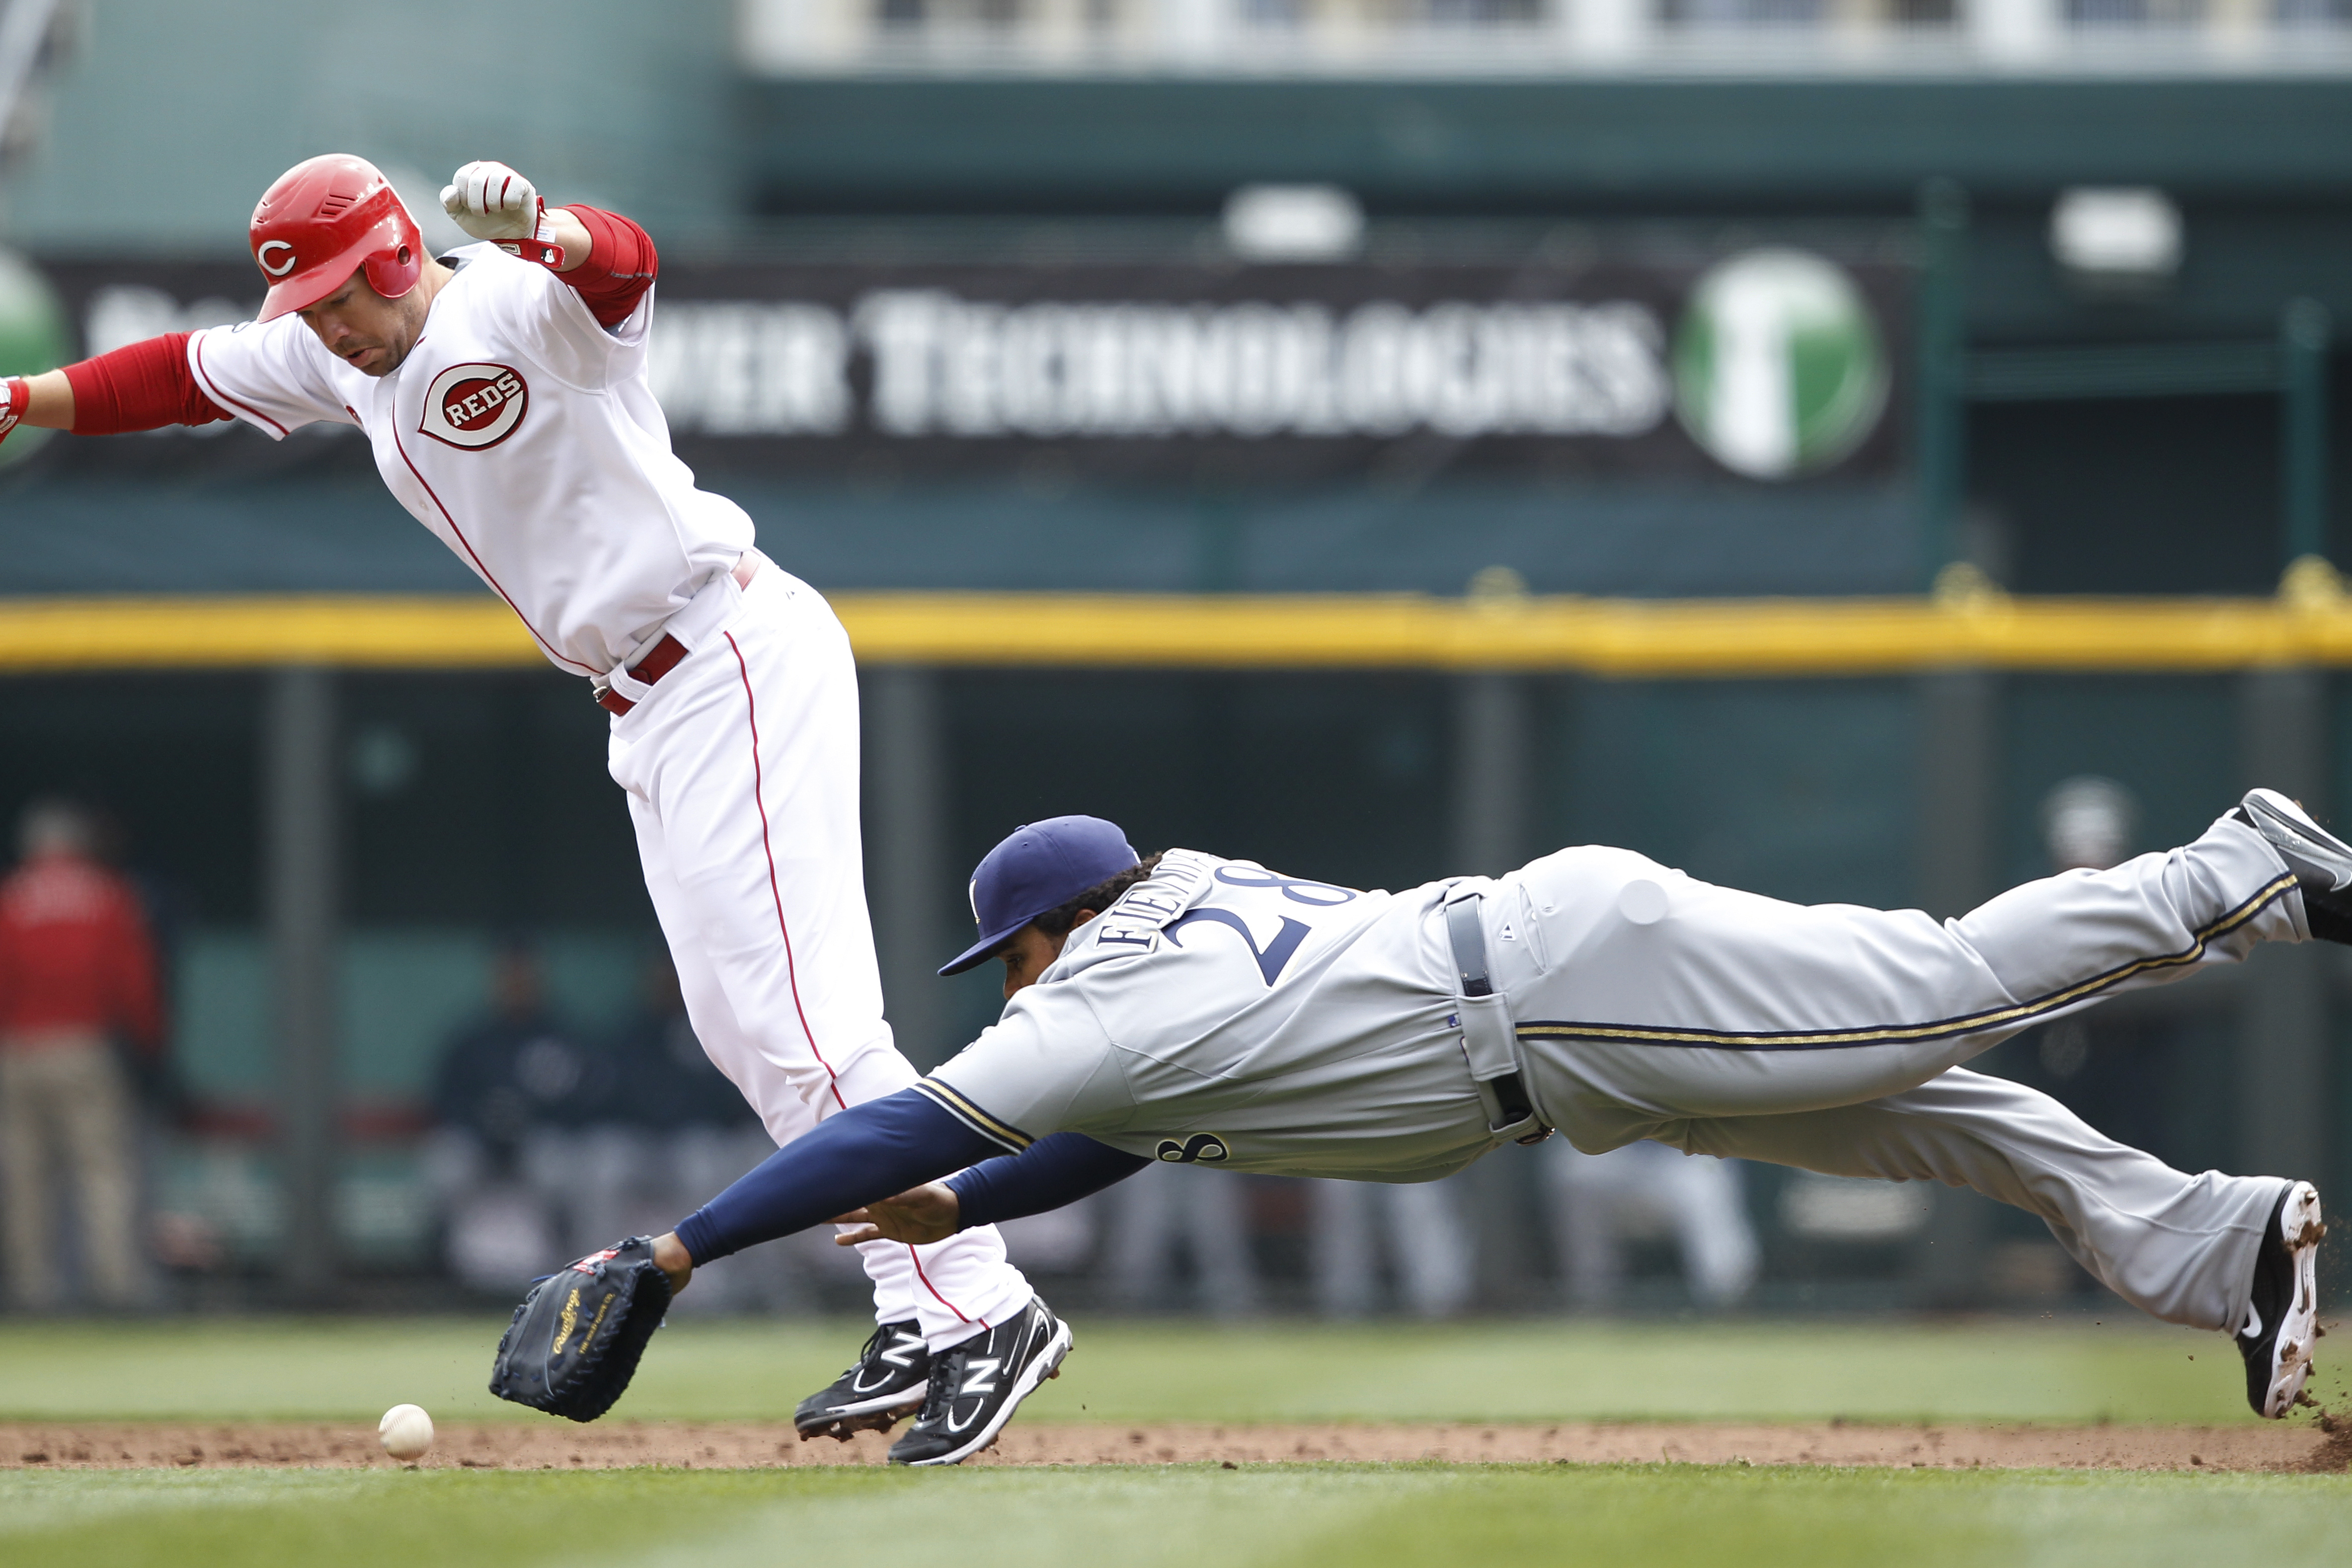 CINCINNATI, OH - MARCH 31: Scott Rolen #27 of the Cincinnati Reds tries to avoid Prince Fielder #28 of the Milwaukee Brewers on a ground ball during the opening day game at Great American Ballpark on March 31, 2011 in Cincinnati, Ohio. (Photo by Joe Robbi